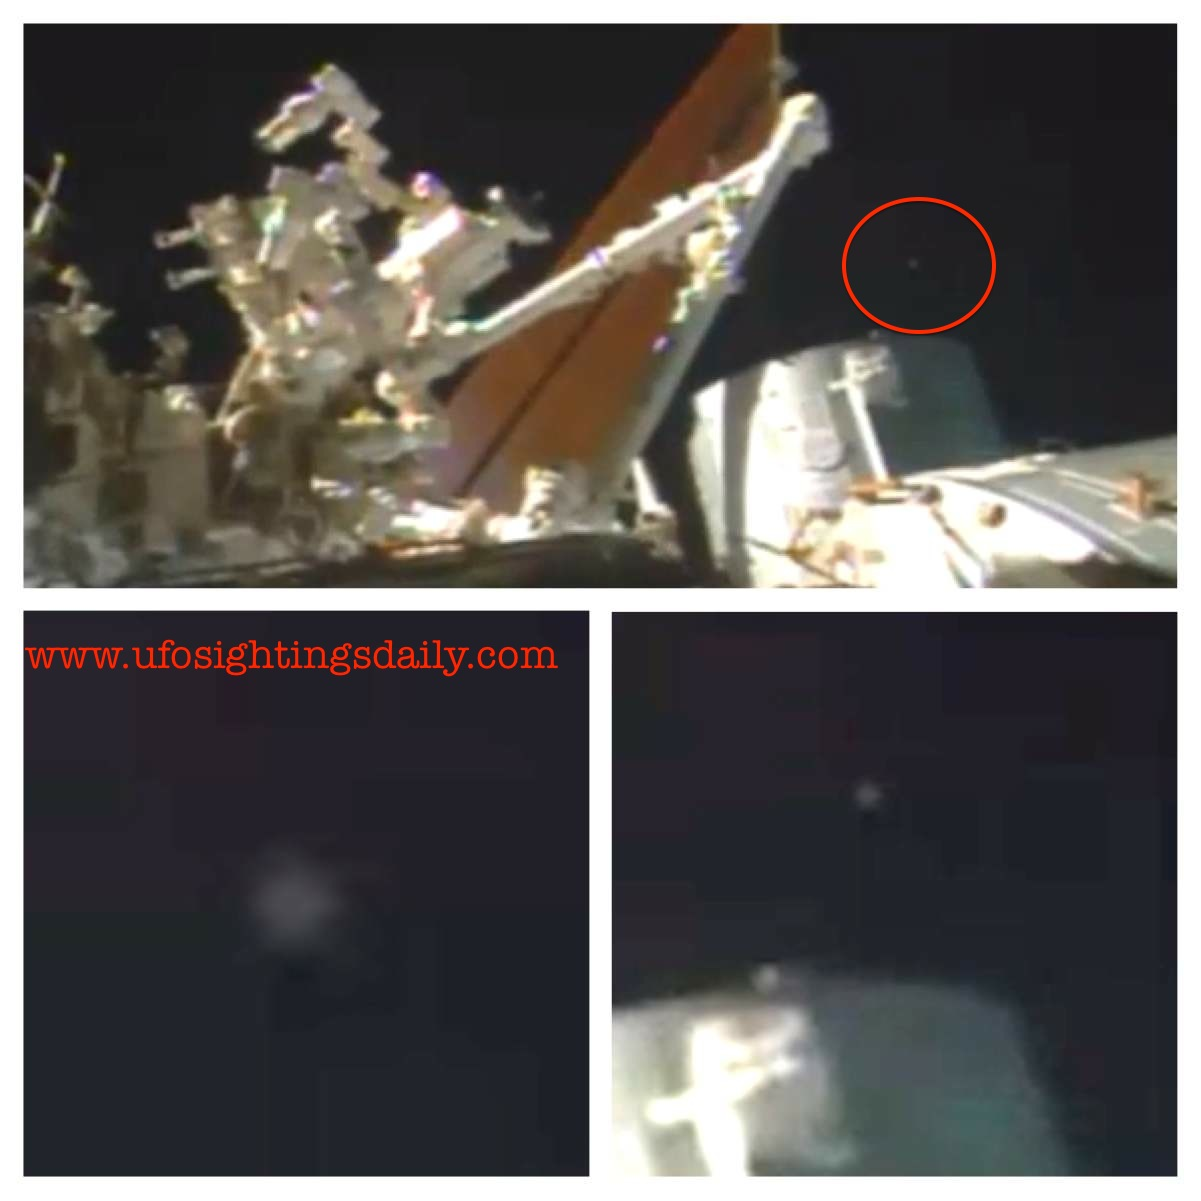 UFO SIGHTINGS DAILY: UFO Caught Near NASA's Space Station ...